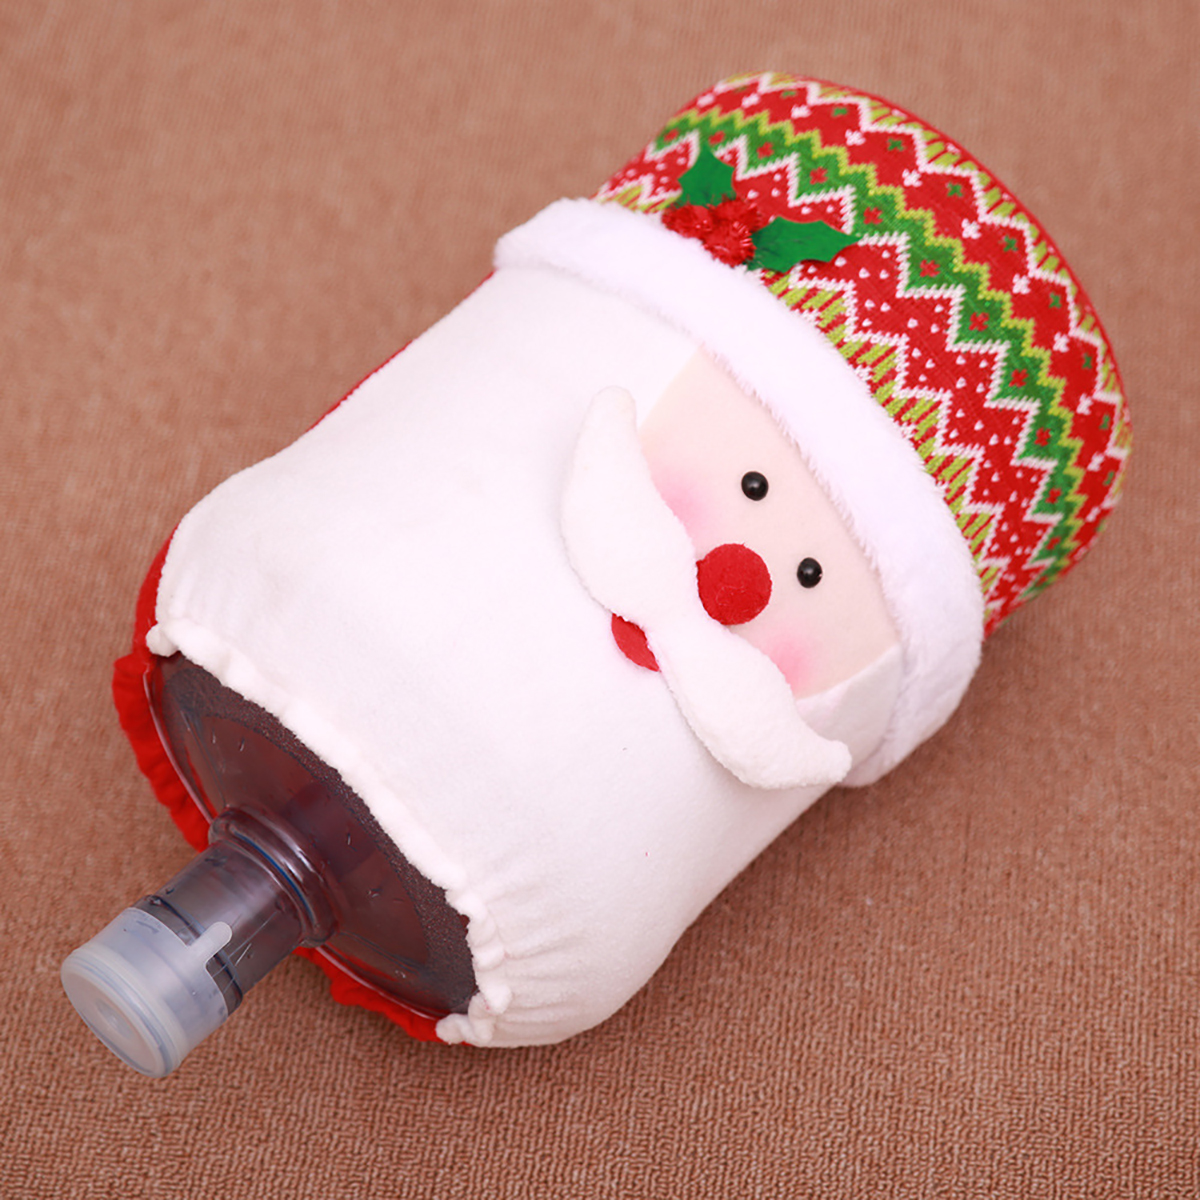 Water Bucket Dispenser Dust Cover Purifier Container Bottle Christmas Xmas Decorations